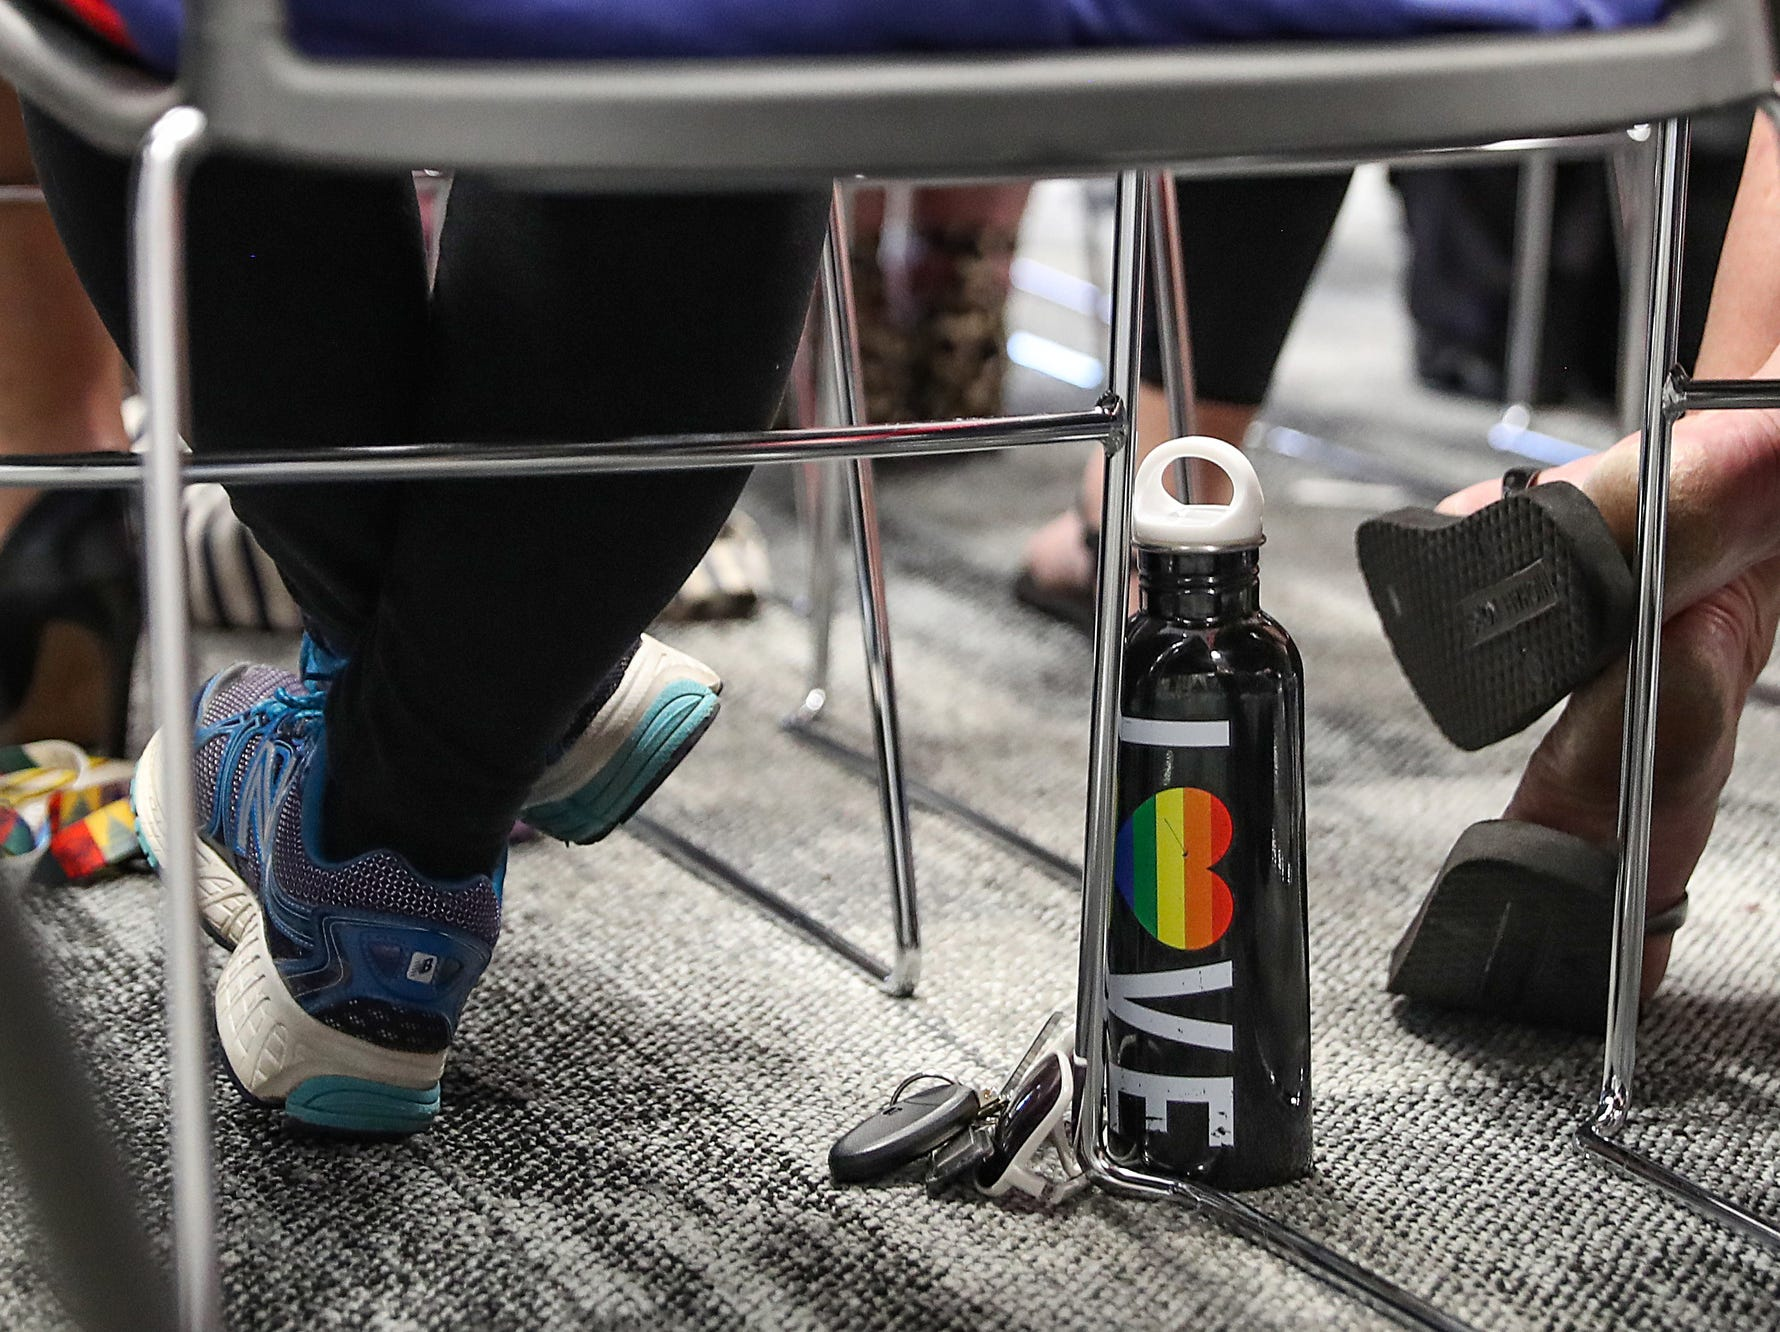 A pride water bottle sits under a chair during the Hamilton Southeastern Schools board meeting at Cumberland Road Elementary in Fishers, Ind., Wednesday, May 8, 2019. The board voted 5-2 to adopt an anti-discrimination policy including language specifically prohibiting discrimination and harassment based on gender identity and sexual orientation.